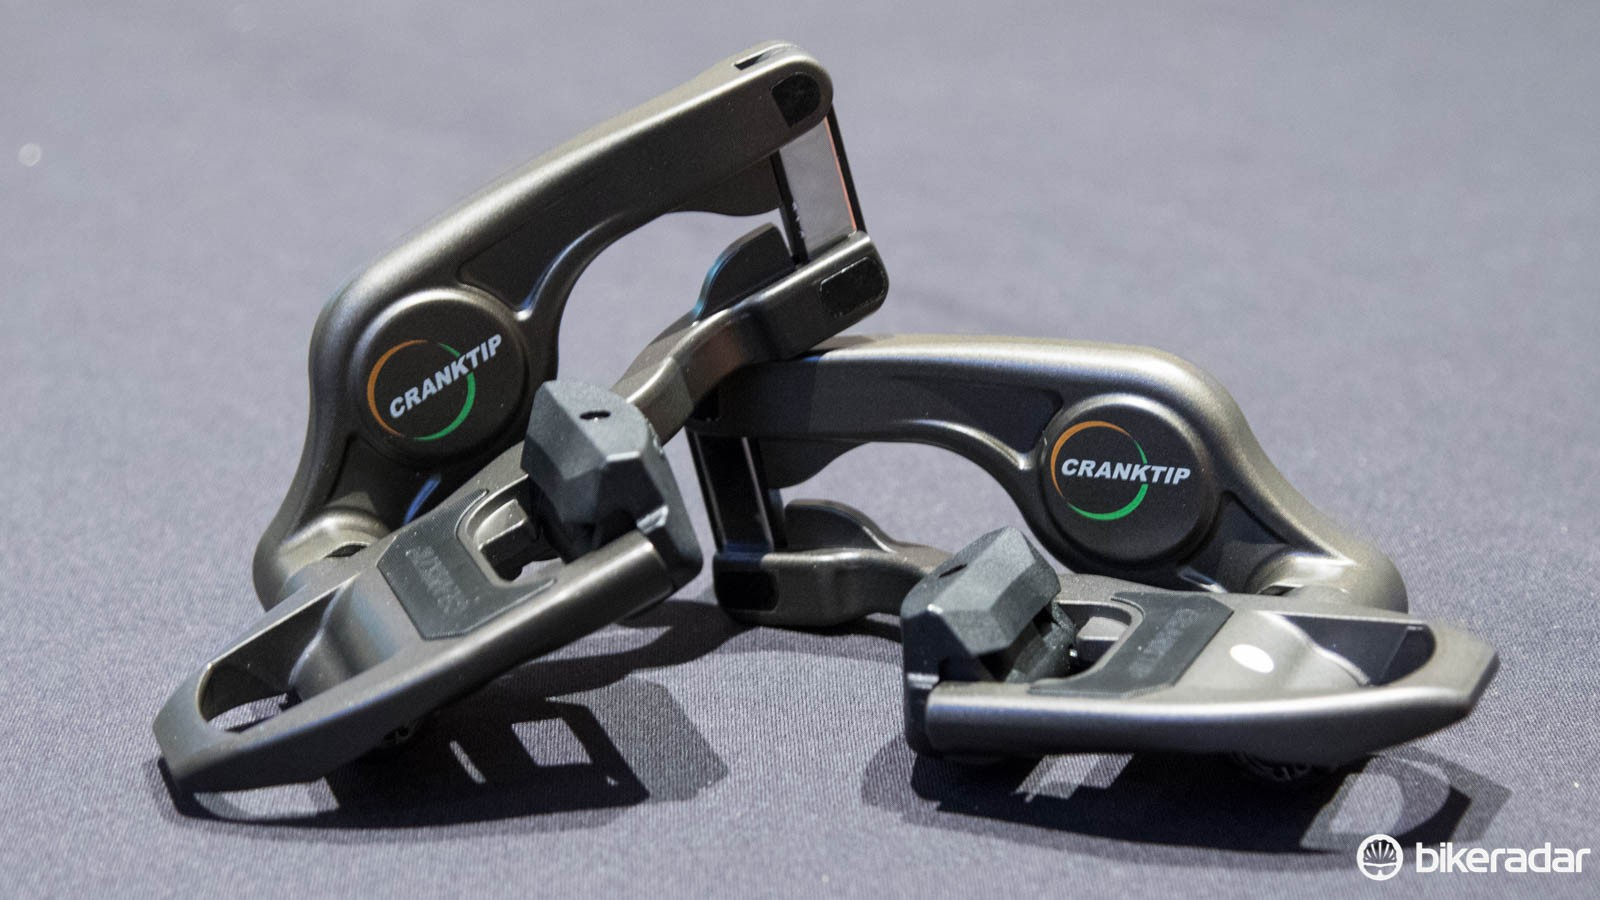 Cranktip pedals are new on the scene, with a unique dual swing-arm design